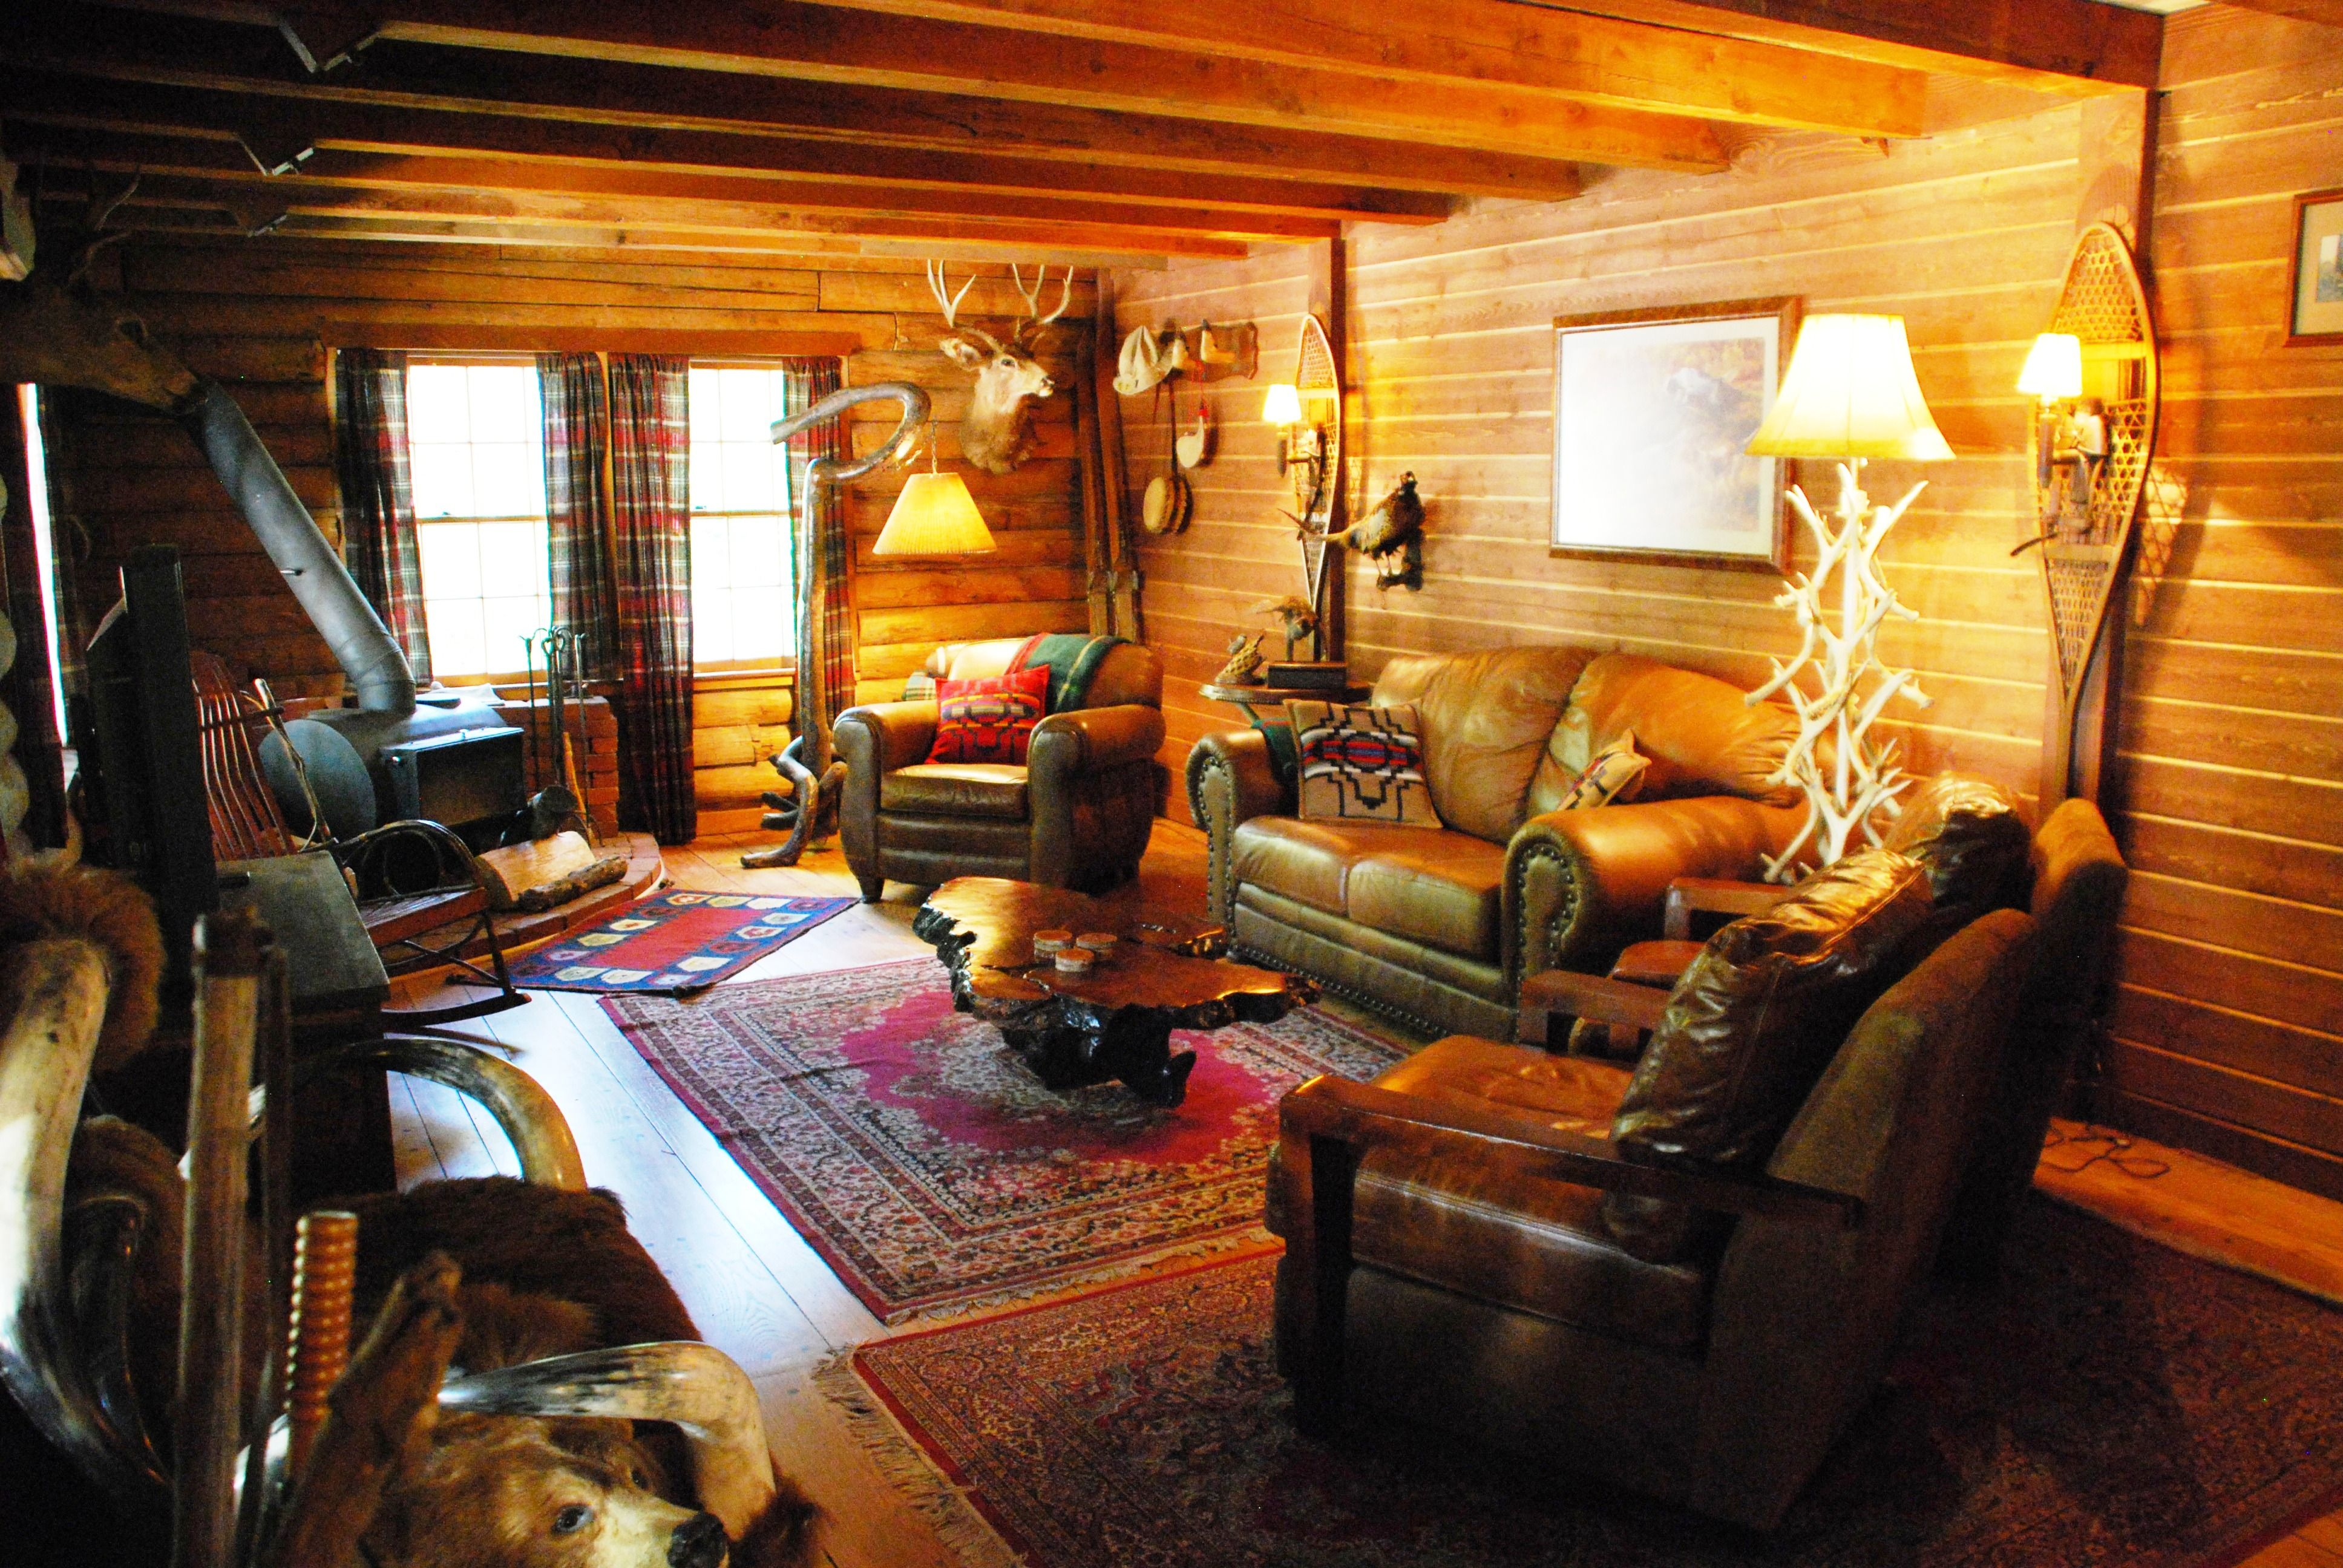 DecorationsWhat Are The Cool Hunting Room Ideas